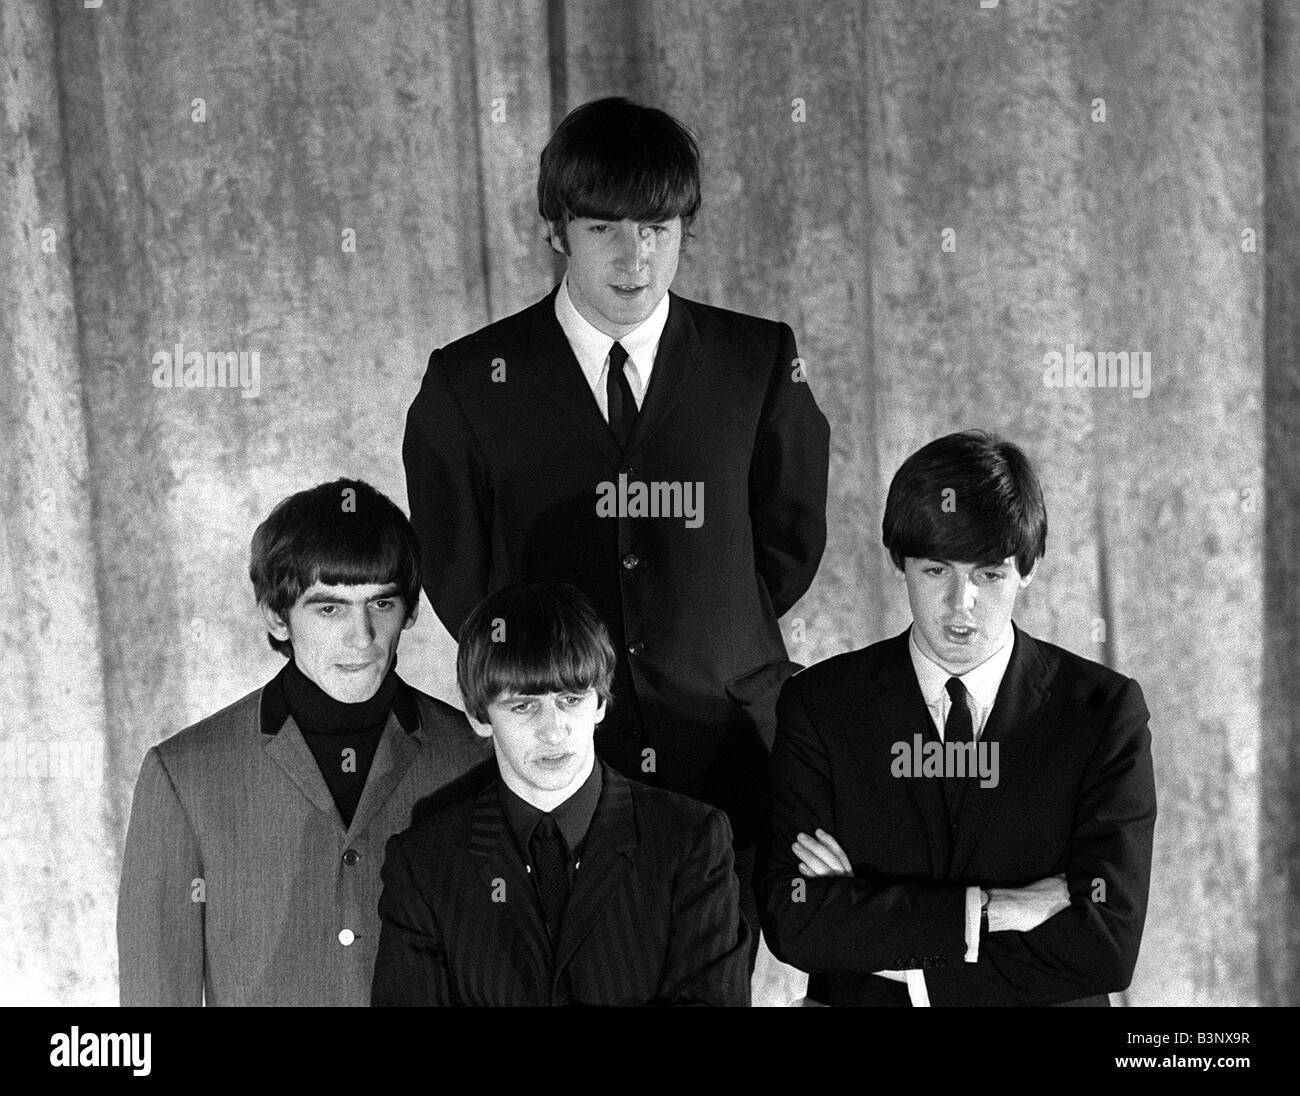 the beatles february 1964 john lennon paul mccartney ringo